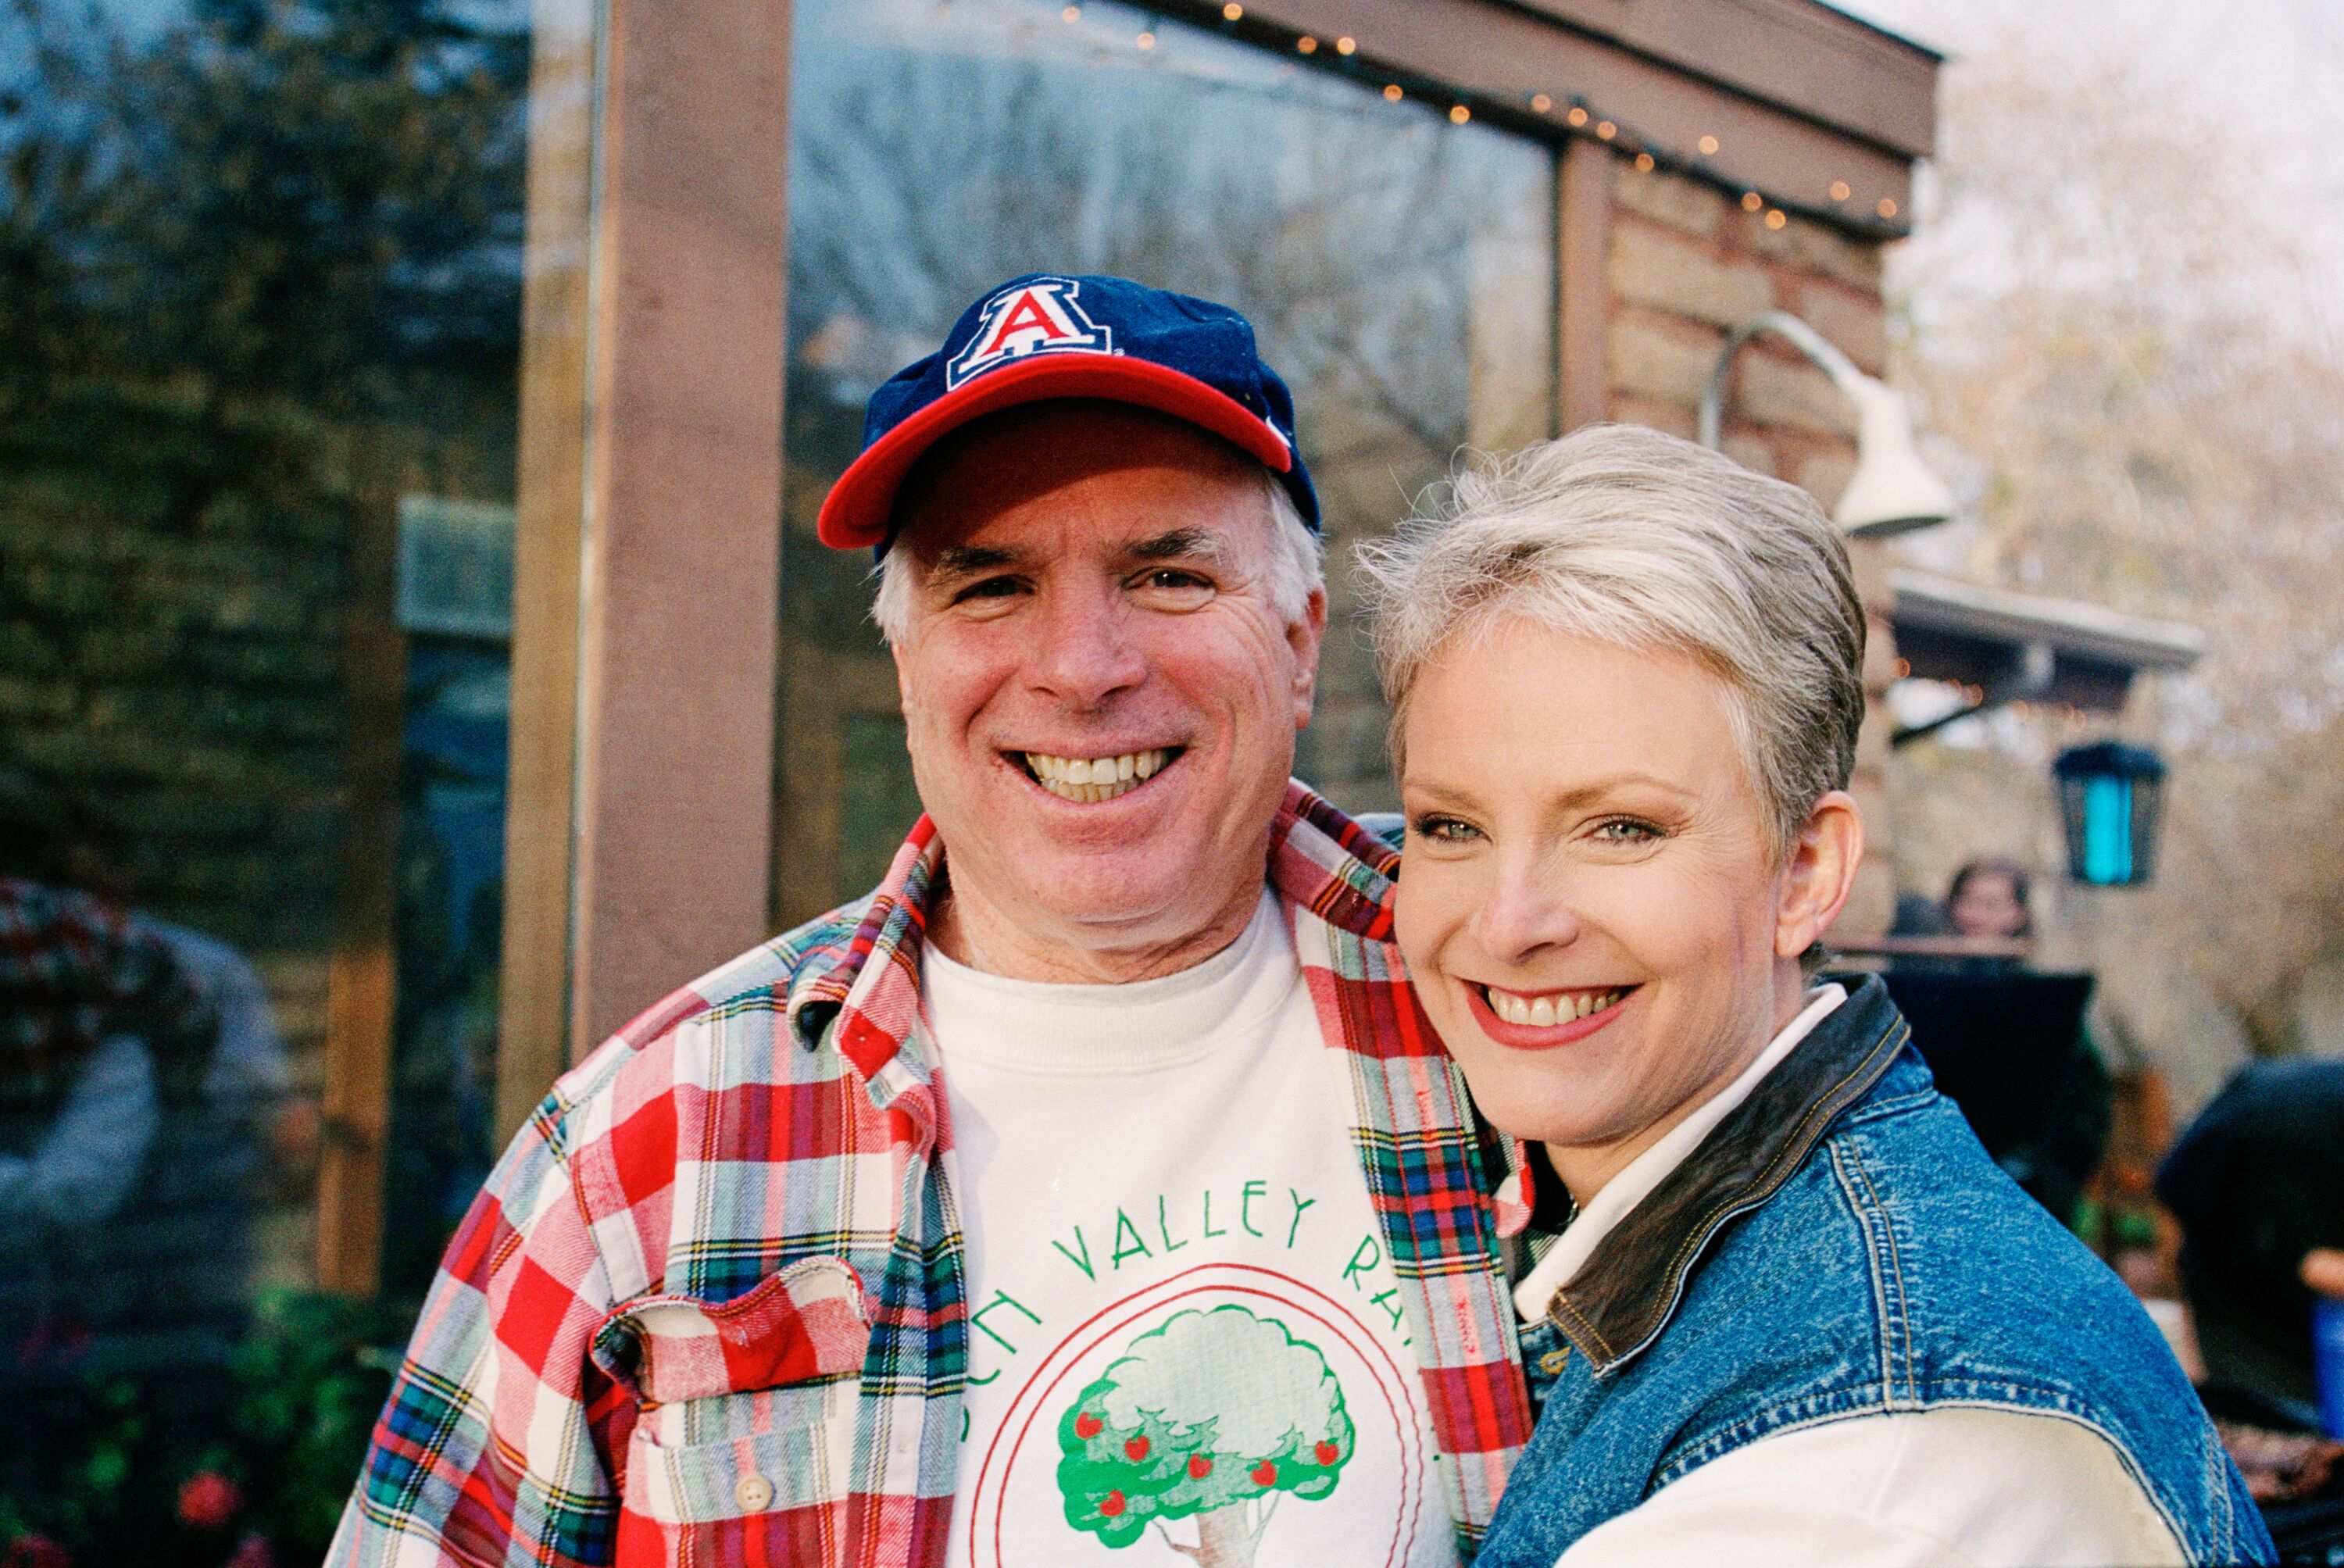 SEDONA, AZ -- MARCH 9: Presidential candidate John McCain (L) and his wife, Cindy McCain, smile for the camera at their family ranch, March 9, 2000 near Sedona, Arizona. (Photo by David Hume Kennerly/Getty Images)